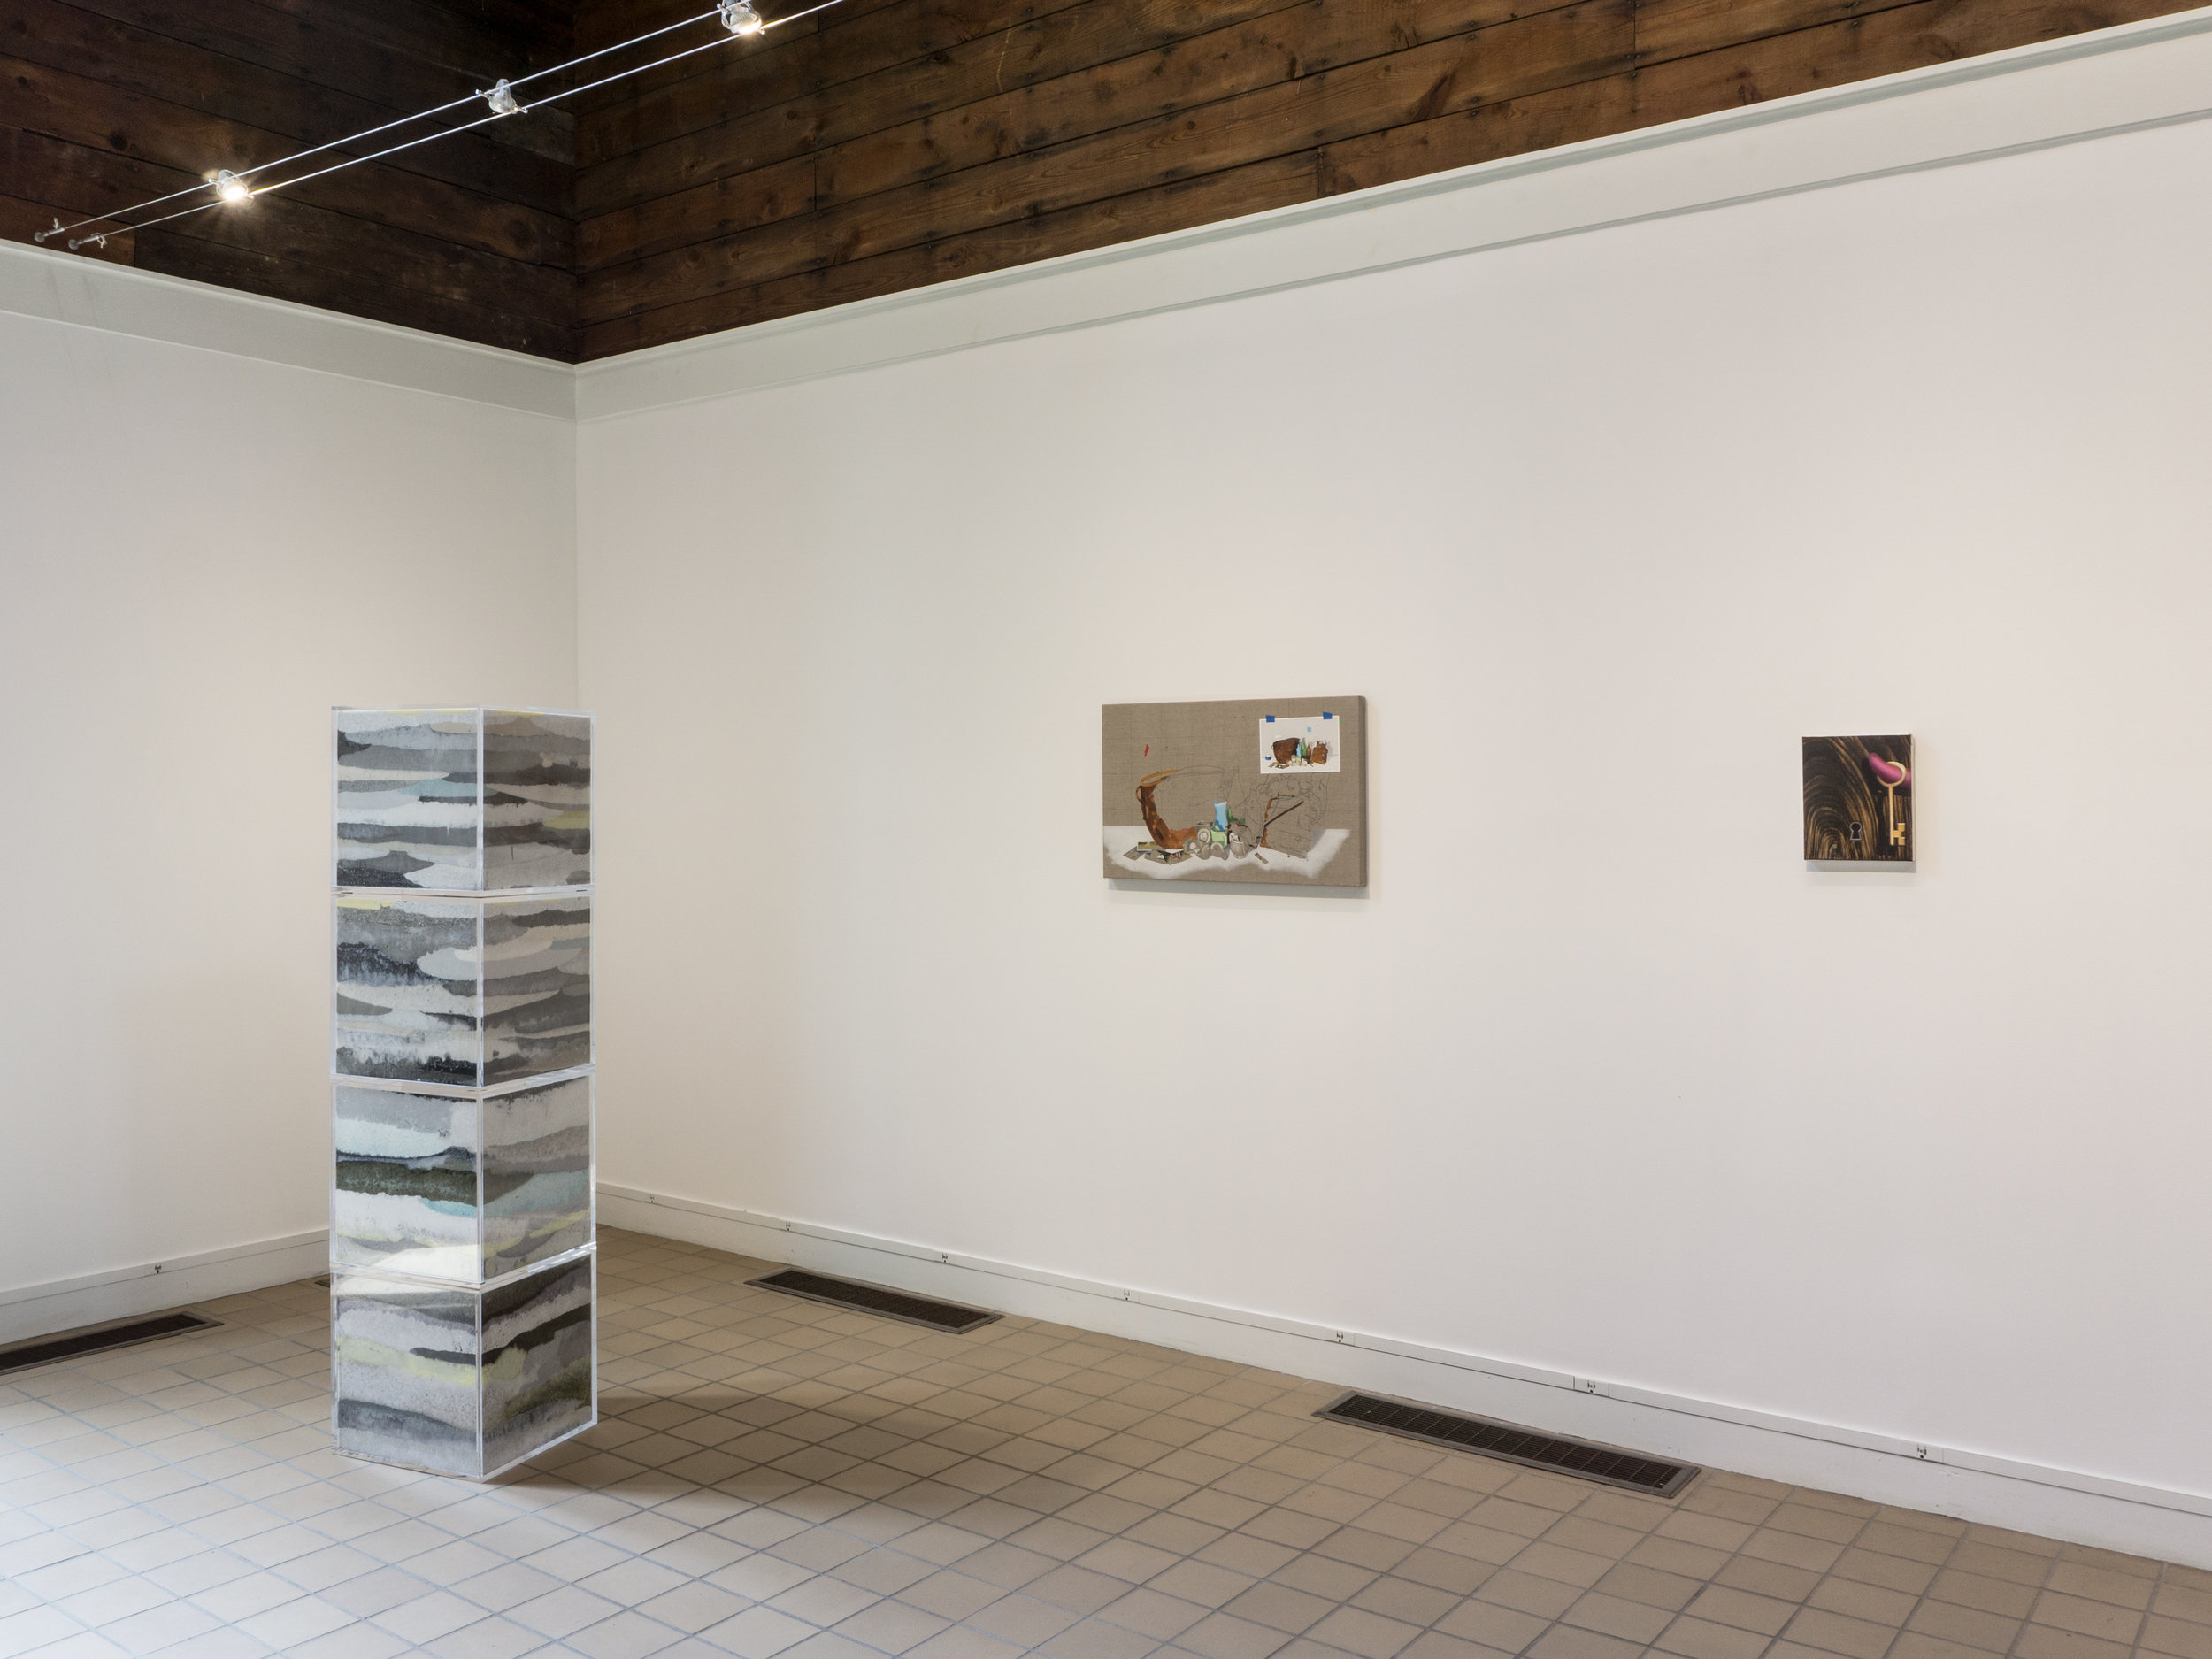 HOME/WORK, Installation view, JDJ | The Ice House, Garrison, NY, 2019